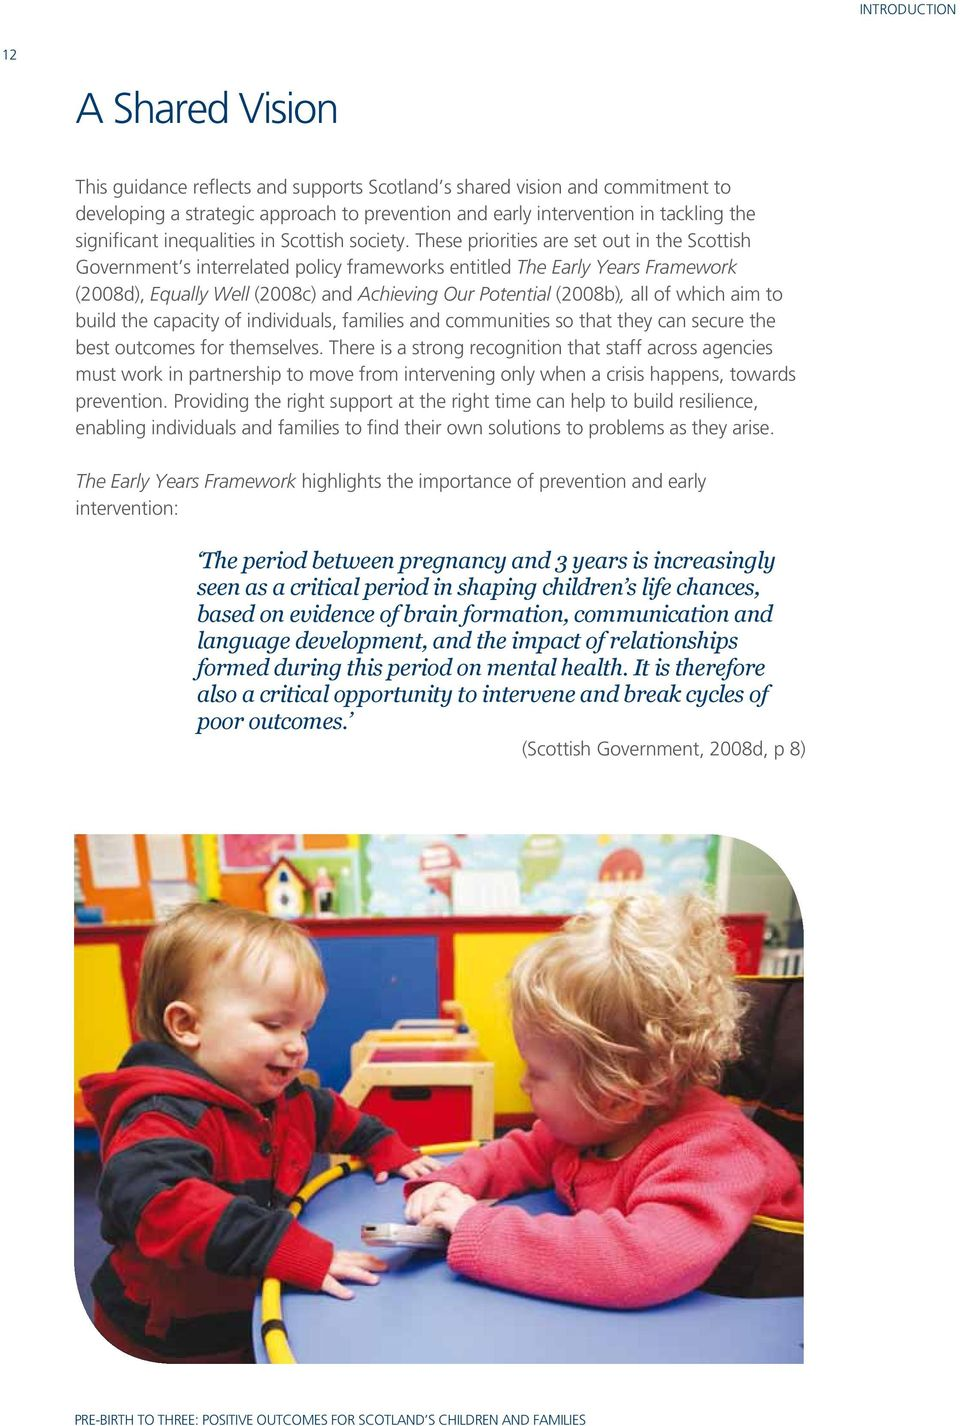 These priorities are set out in the Scottish Government s interrelated policy frameworks entitled The Early Years Framework (2008d), Equally Well (2008c) and Achieving Our Potential (2008b), all of